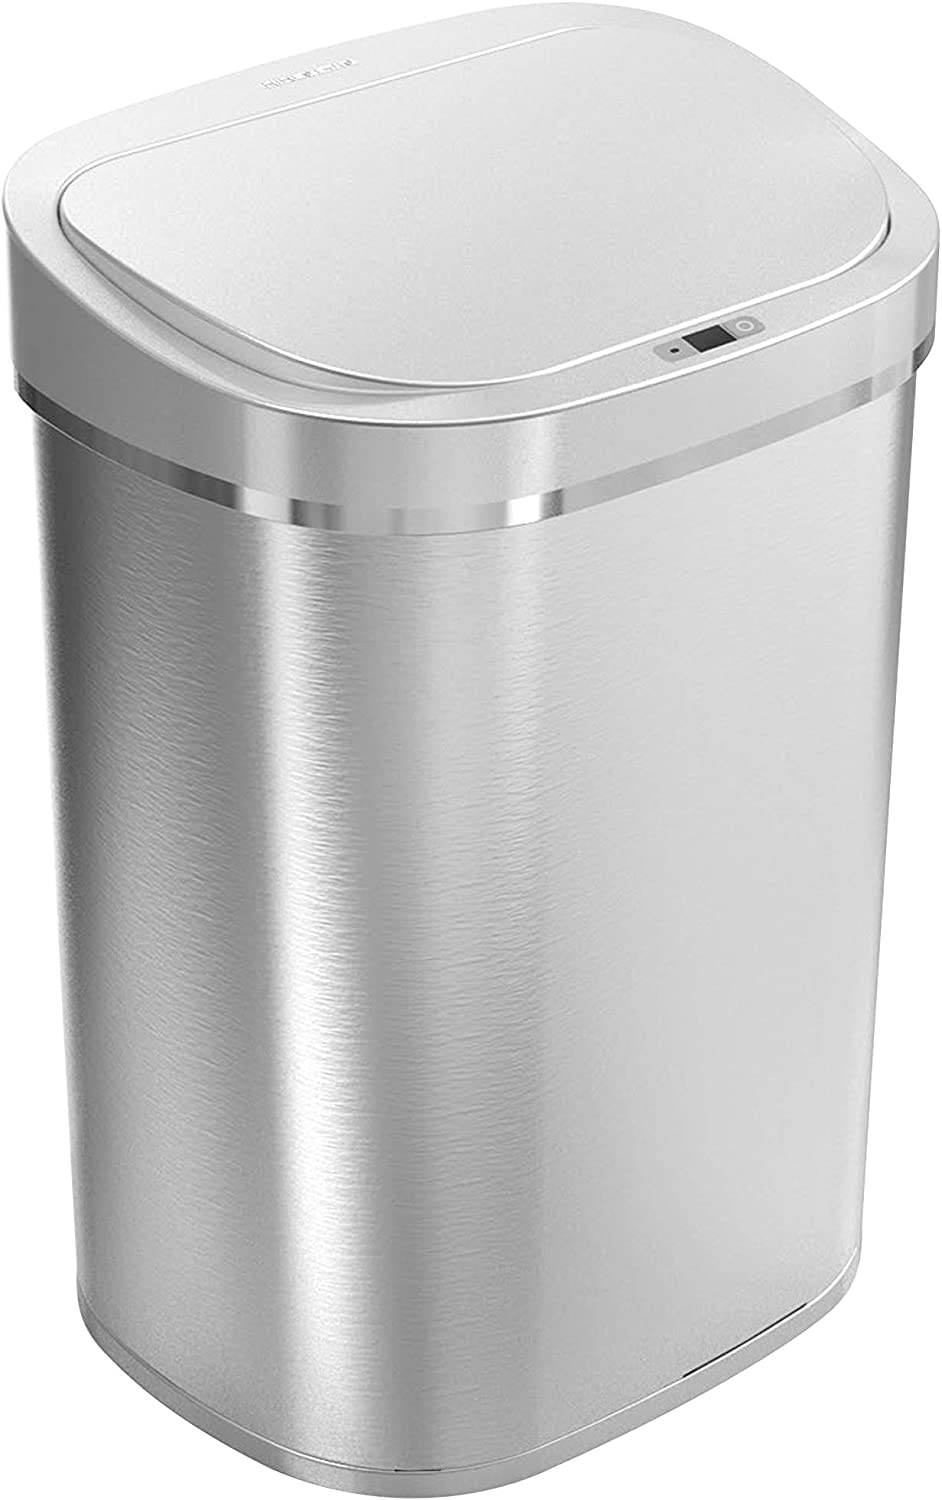 Ninestars DZT-80-35 Automatic Touchless Infrared Motion Sensor Trash Can, 21 Gal 80L, Heavy Duty Stainless Steel Base (Oval, Brush Trashcan, Silver Lid